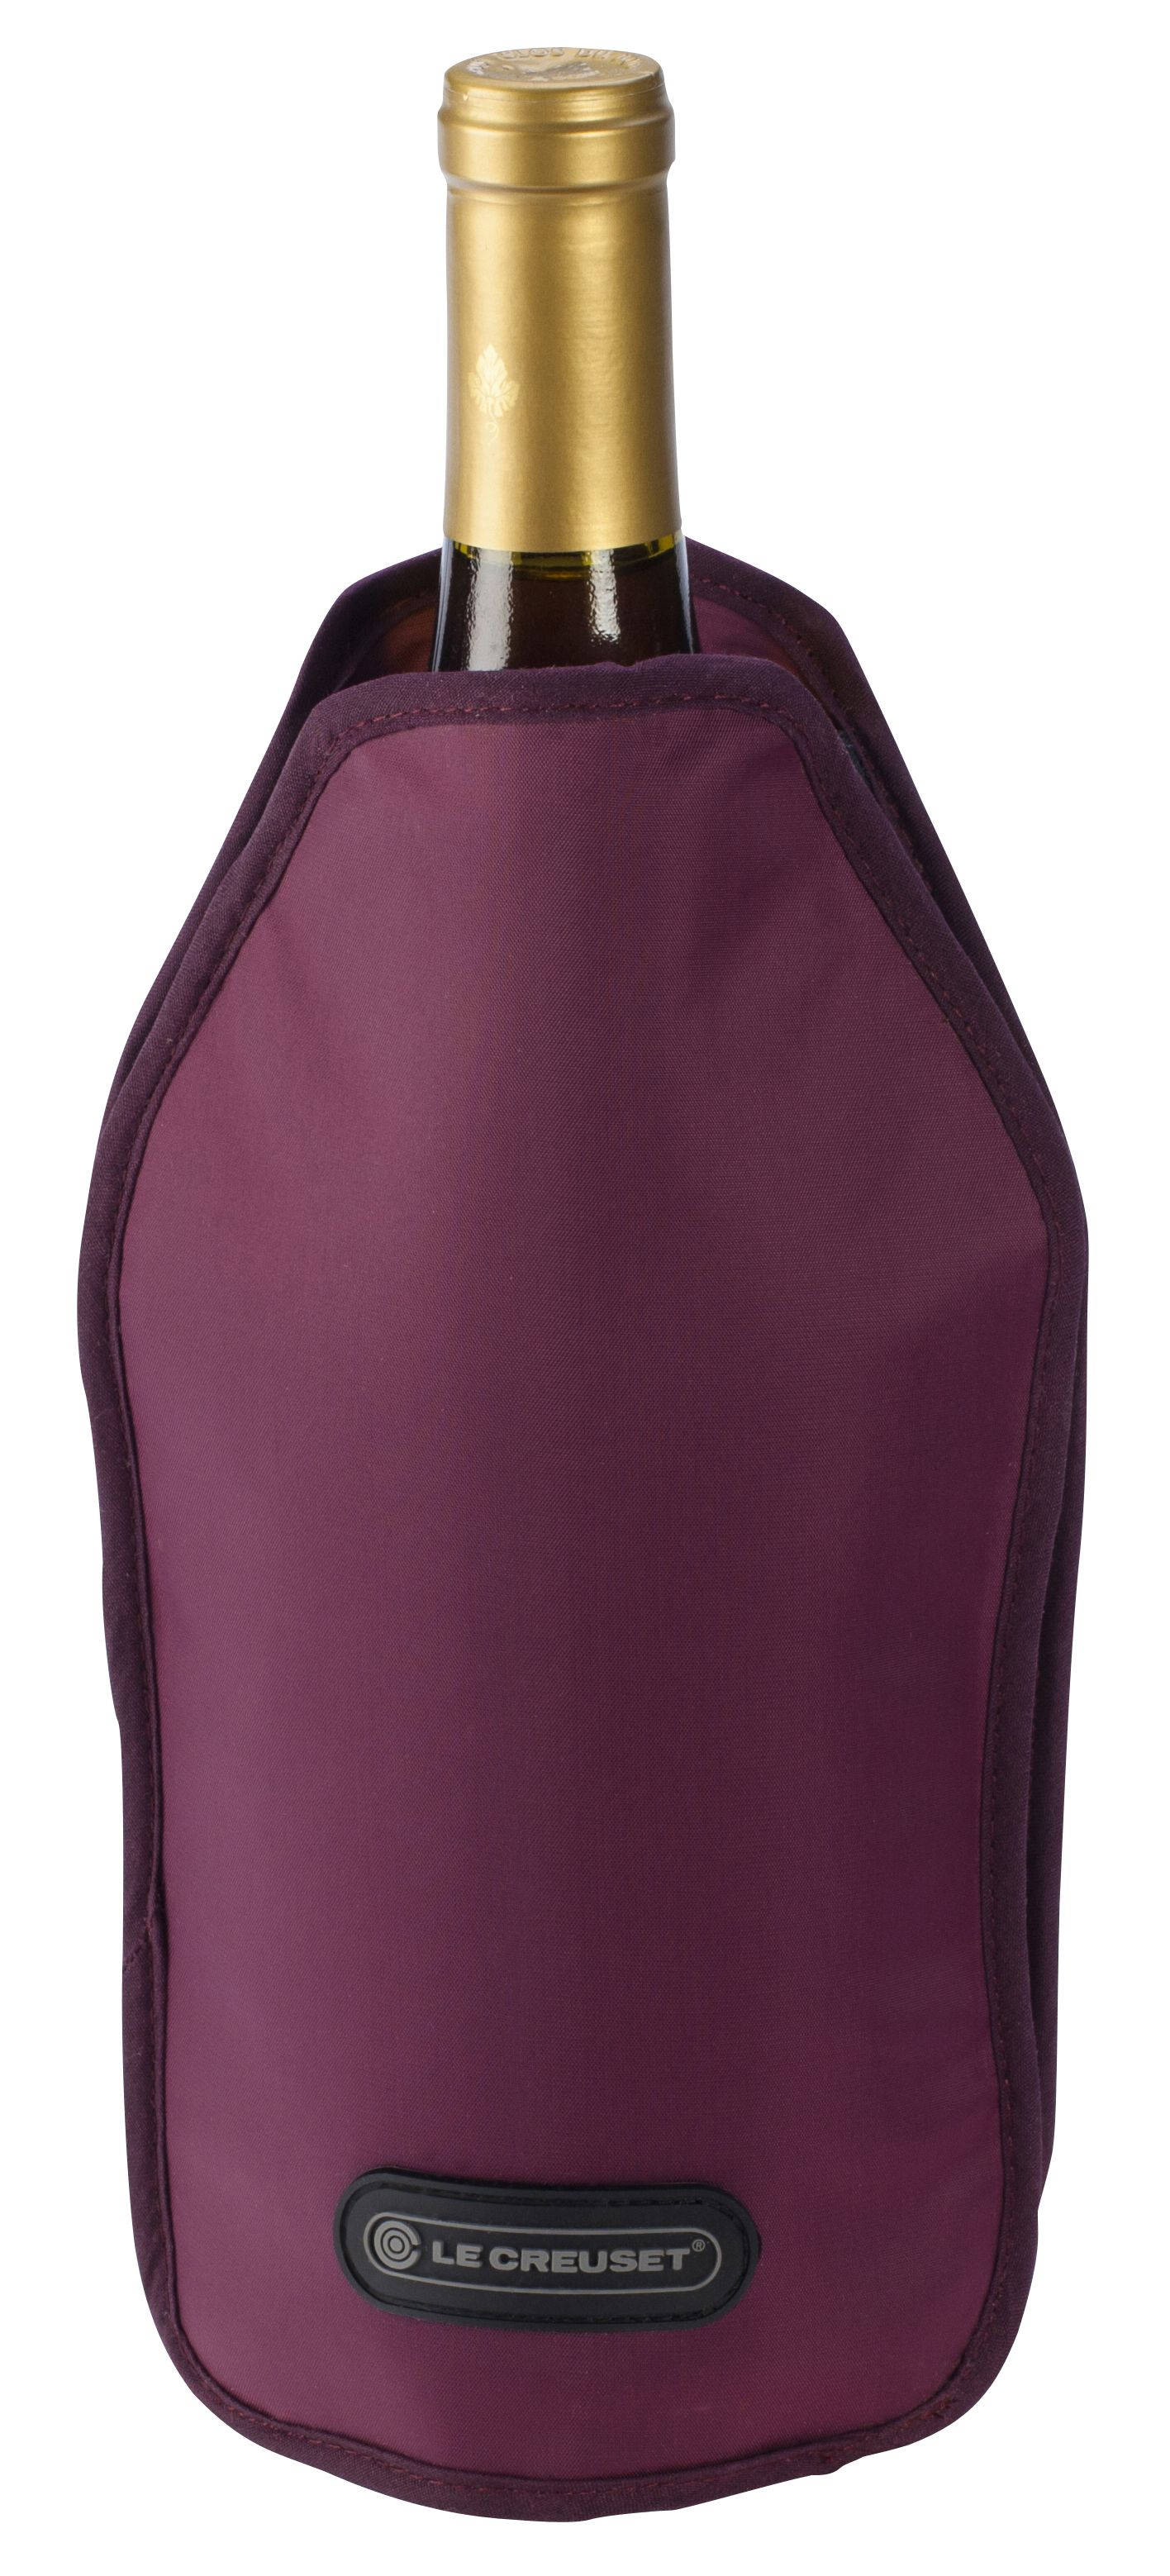 wine.com Le Creuset Wine Cooler Sleeve in Burgundy Gift Product Image